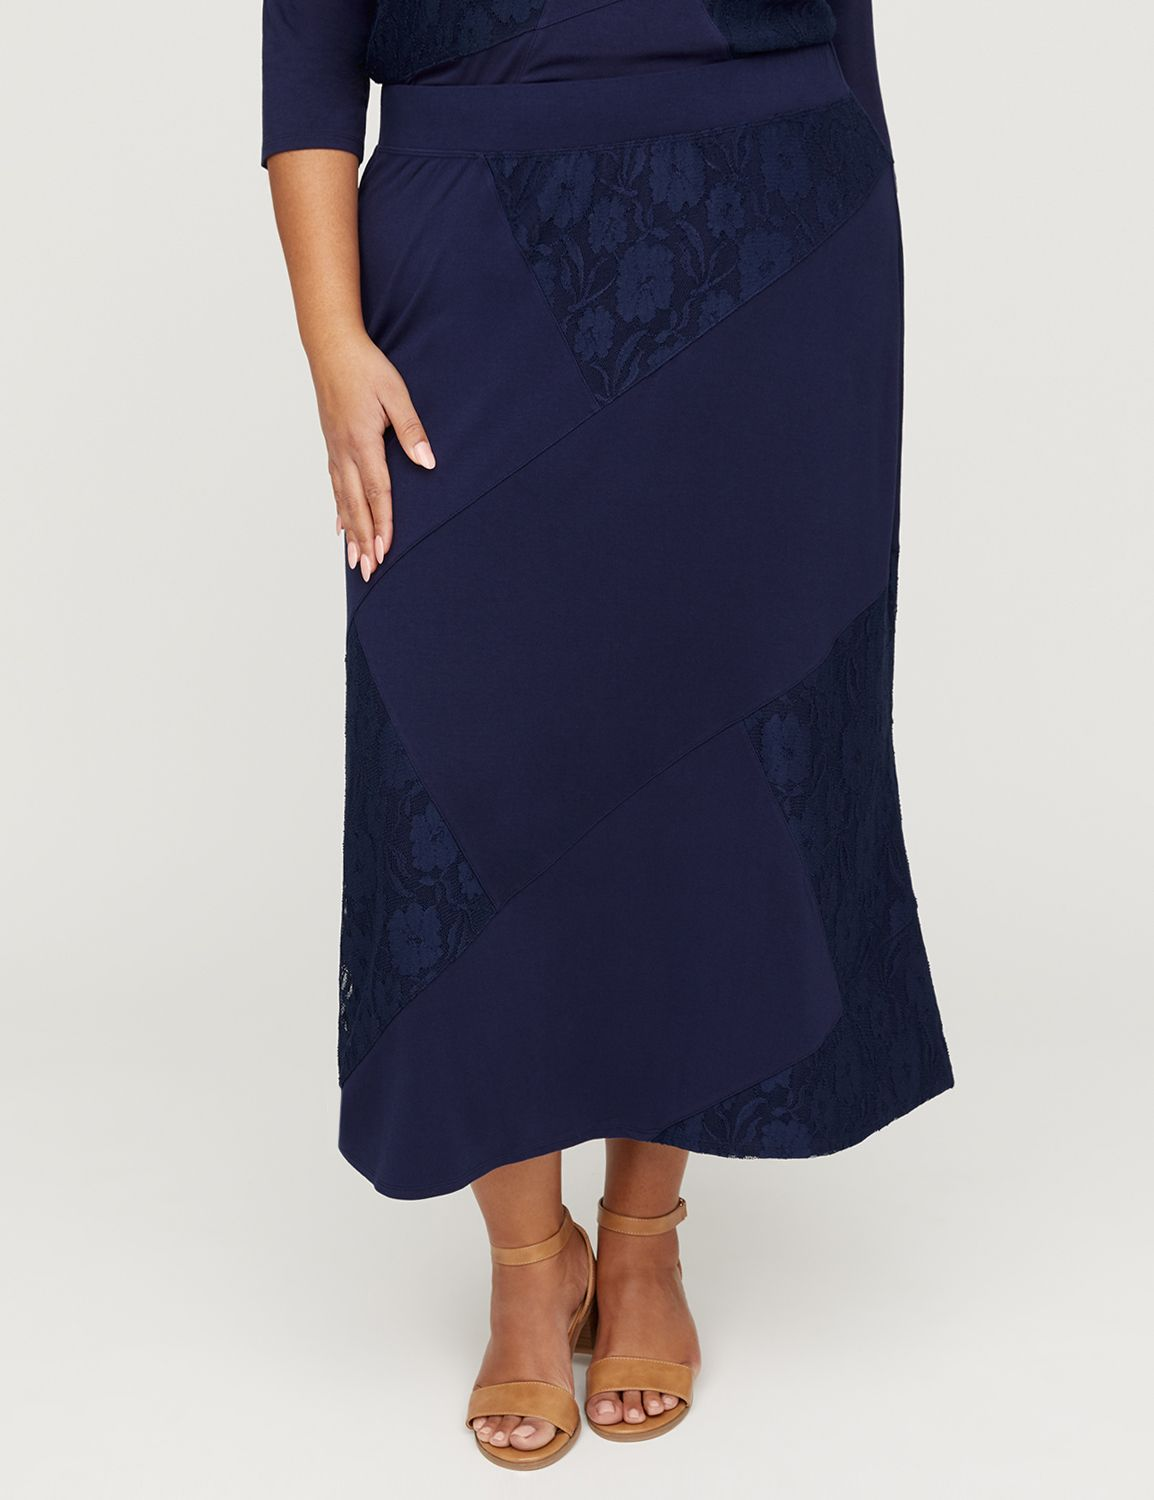 819b13252cd AnyWear Navy Lace Patchwork Maxi Skirt